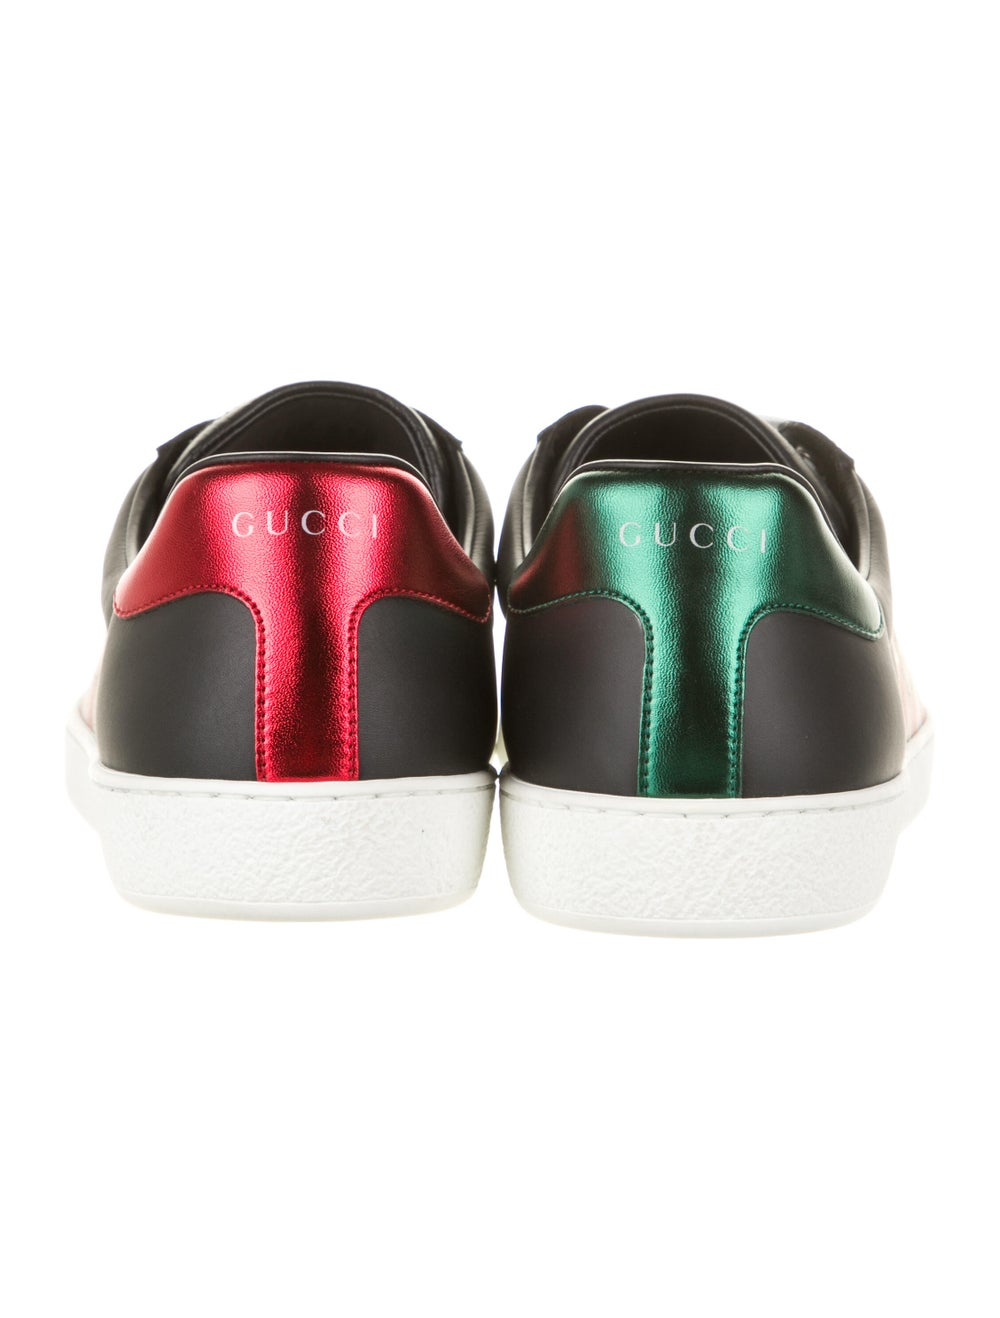 Gucci Kingsnake Ace Sneakers Black - image 4